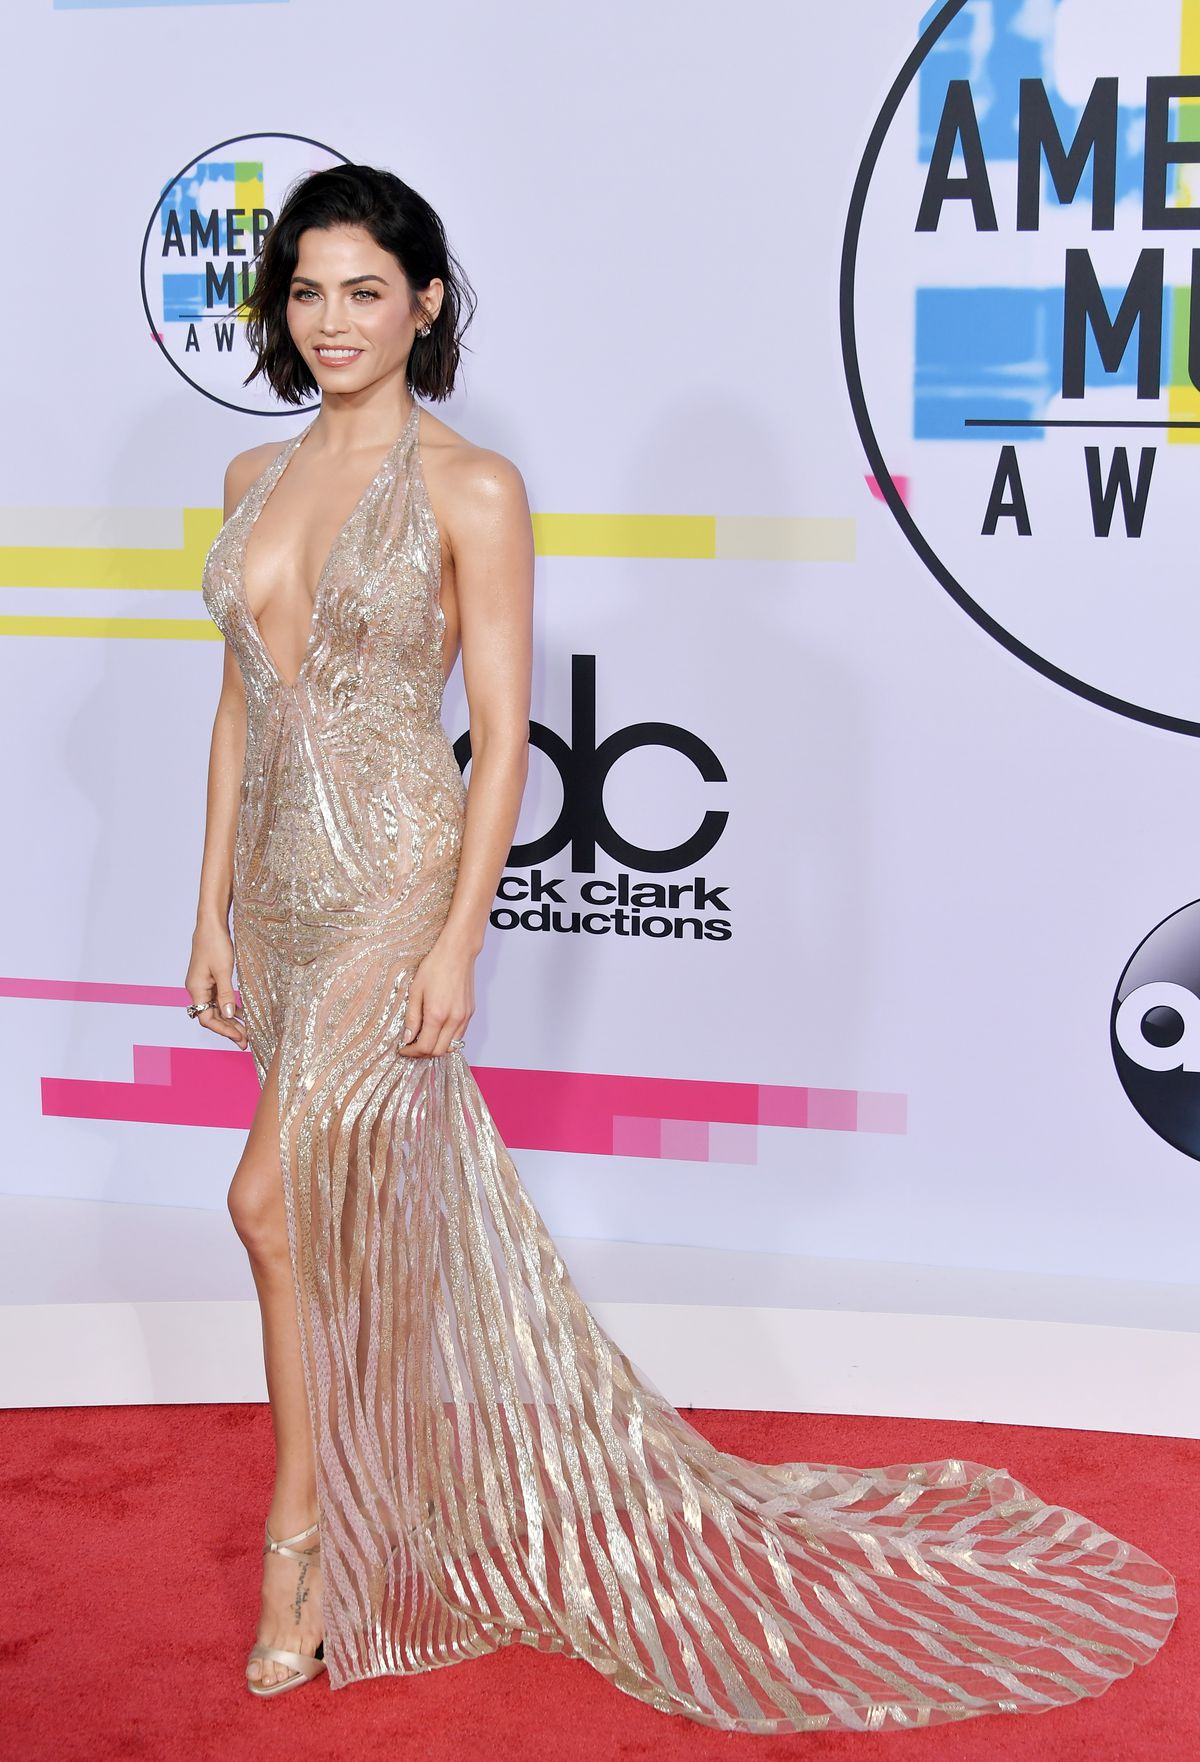 LOS ANGELES, CA - NOVEMBER 19:  Jenna Dewan attends the 2017 American Music Awards at Microsoft Theater on November 19, 2017 in Los Angeles, California.